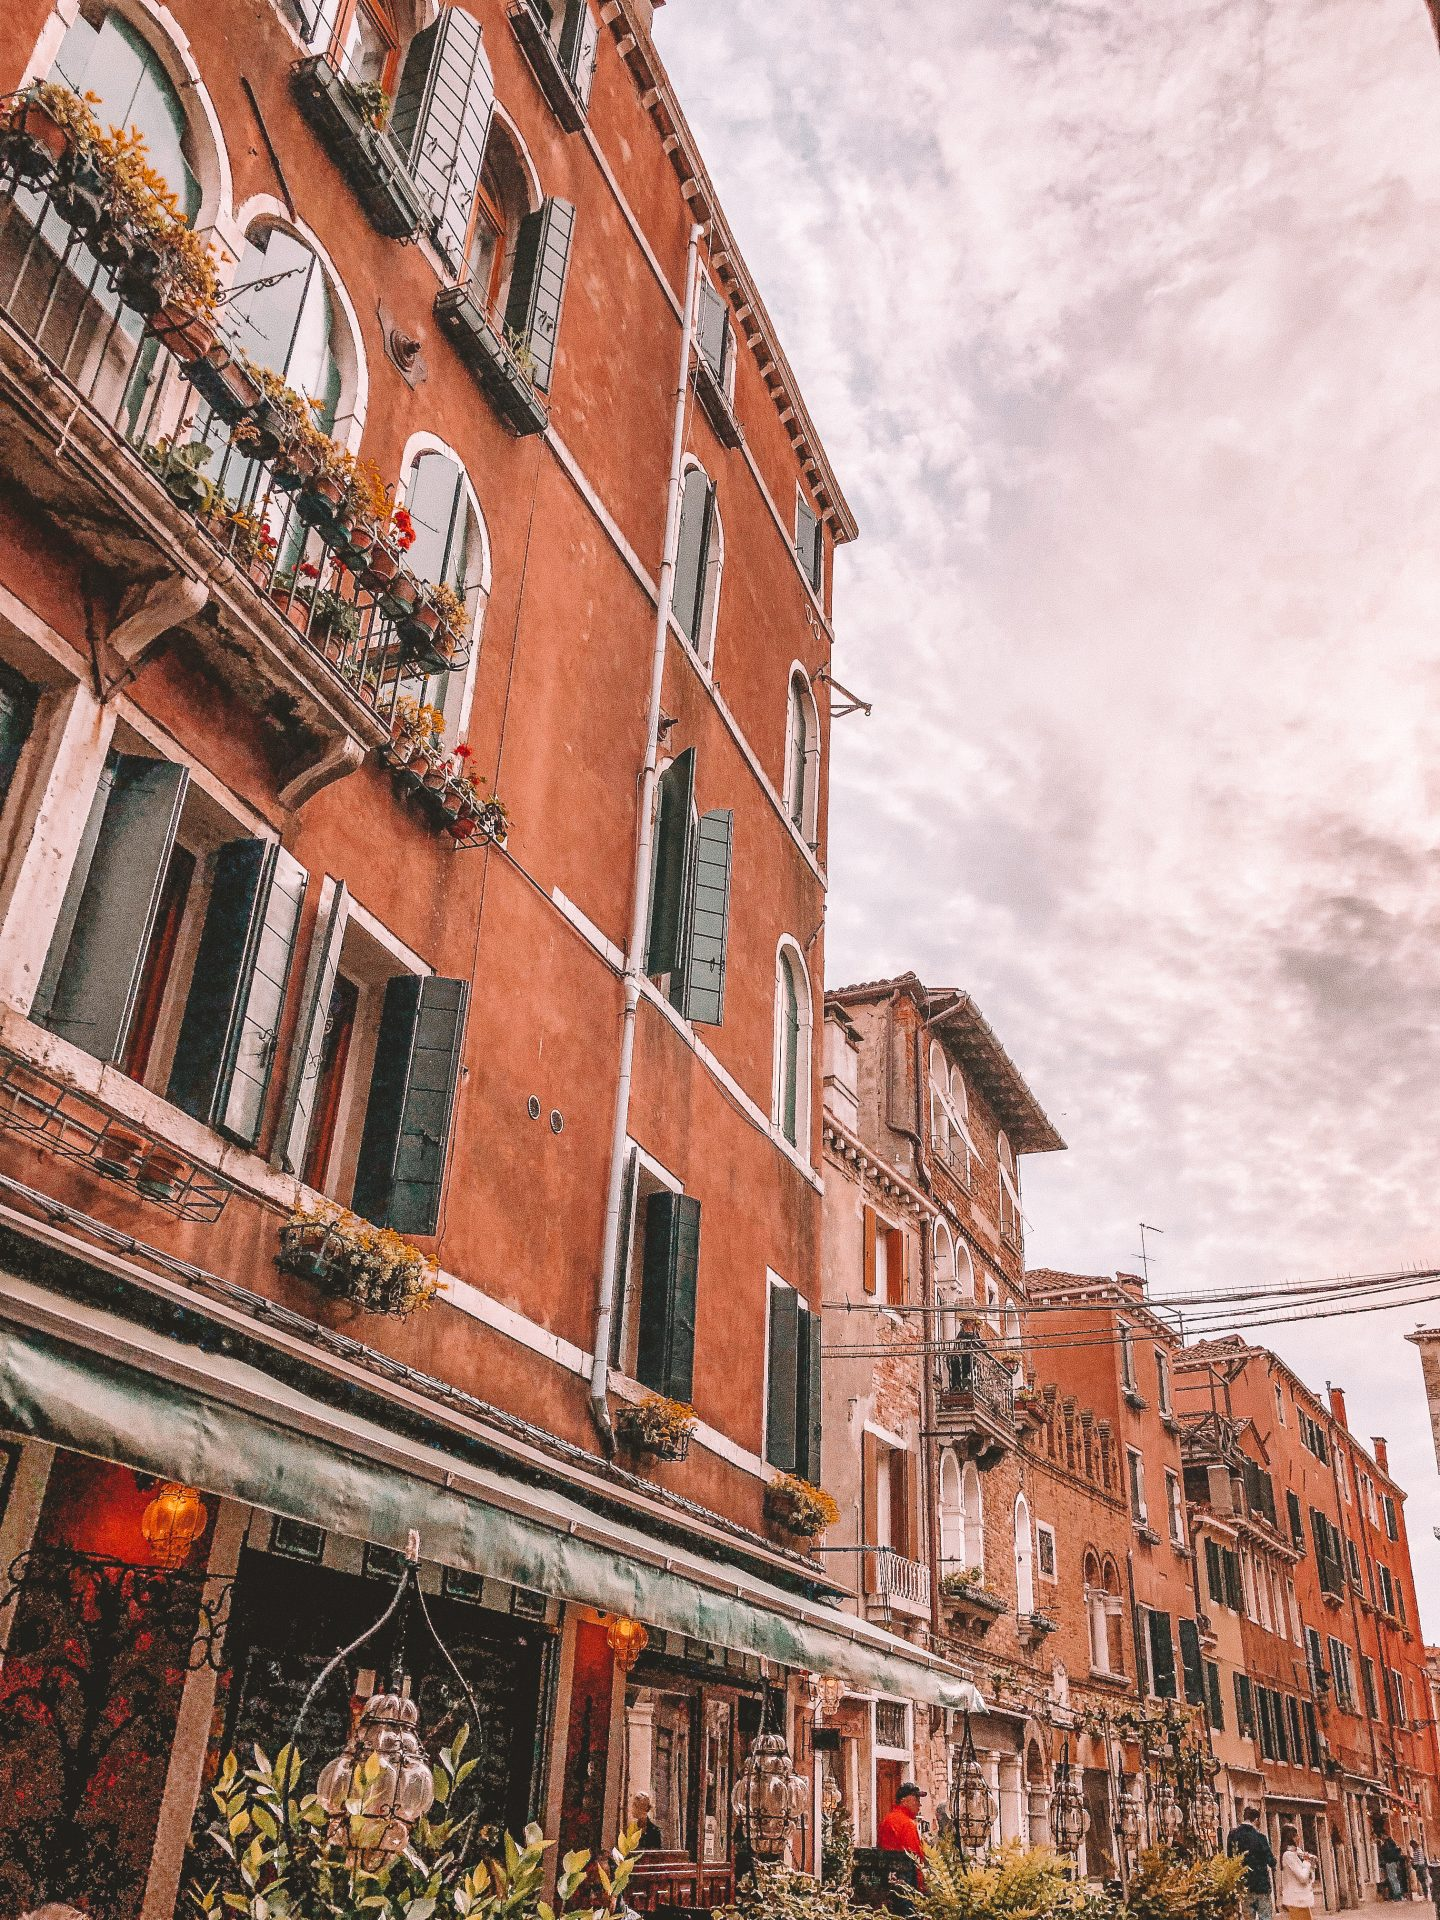 Buildings with a cloudy sky in the background in Venice, Italy